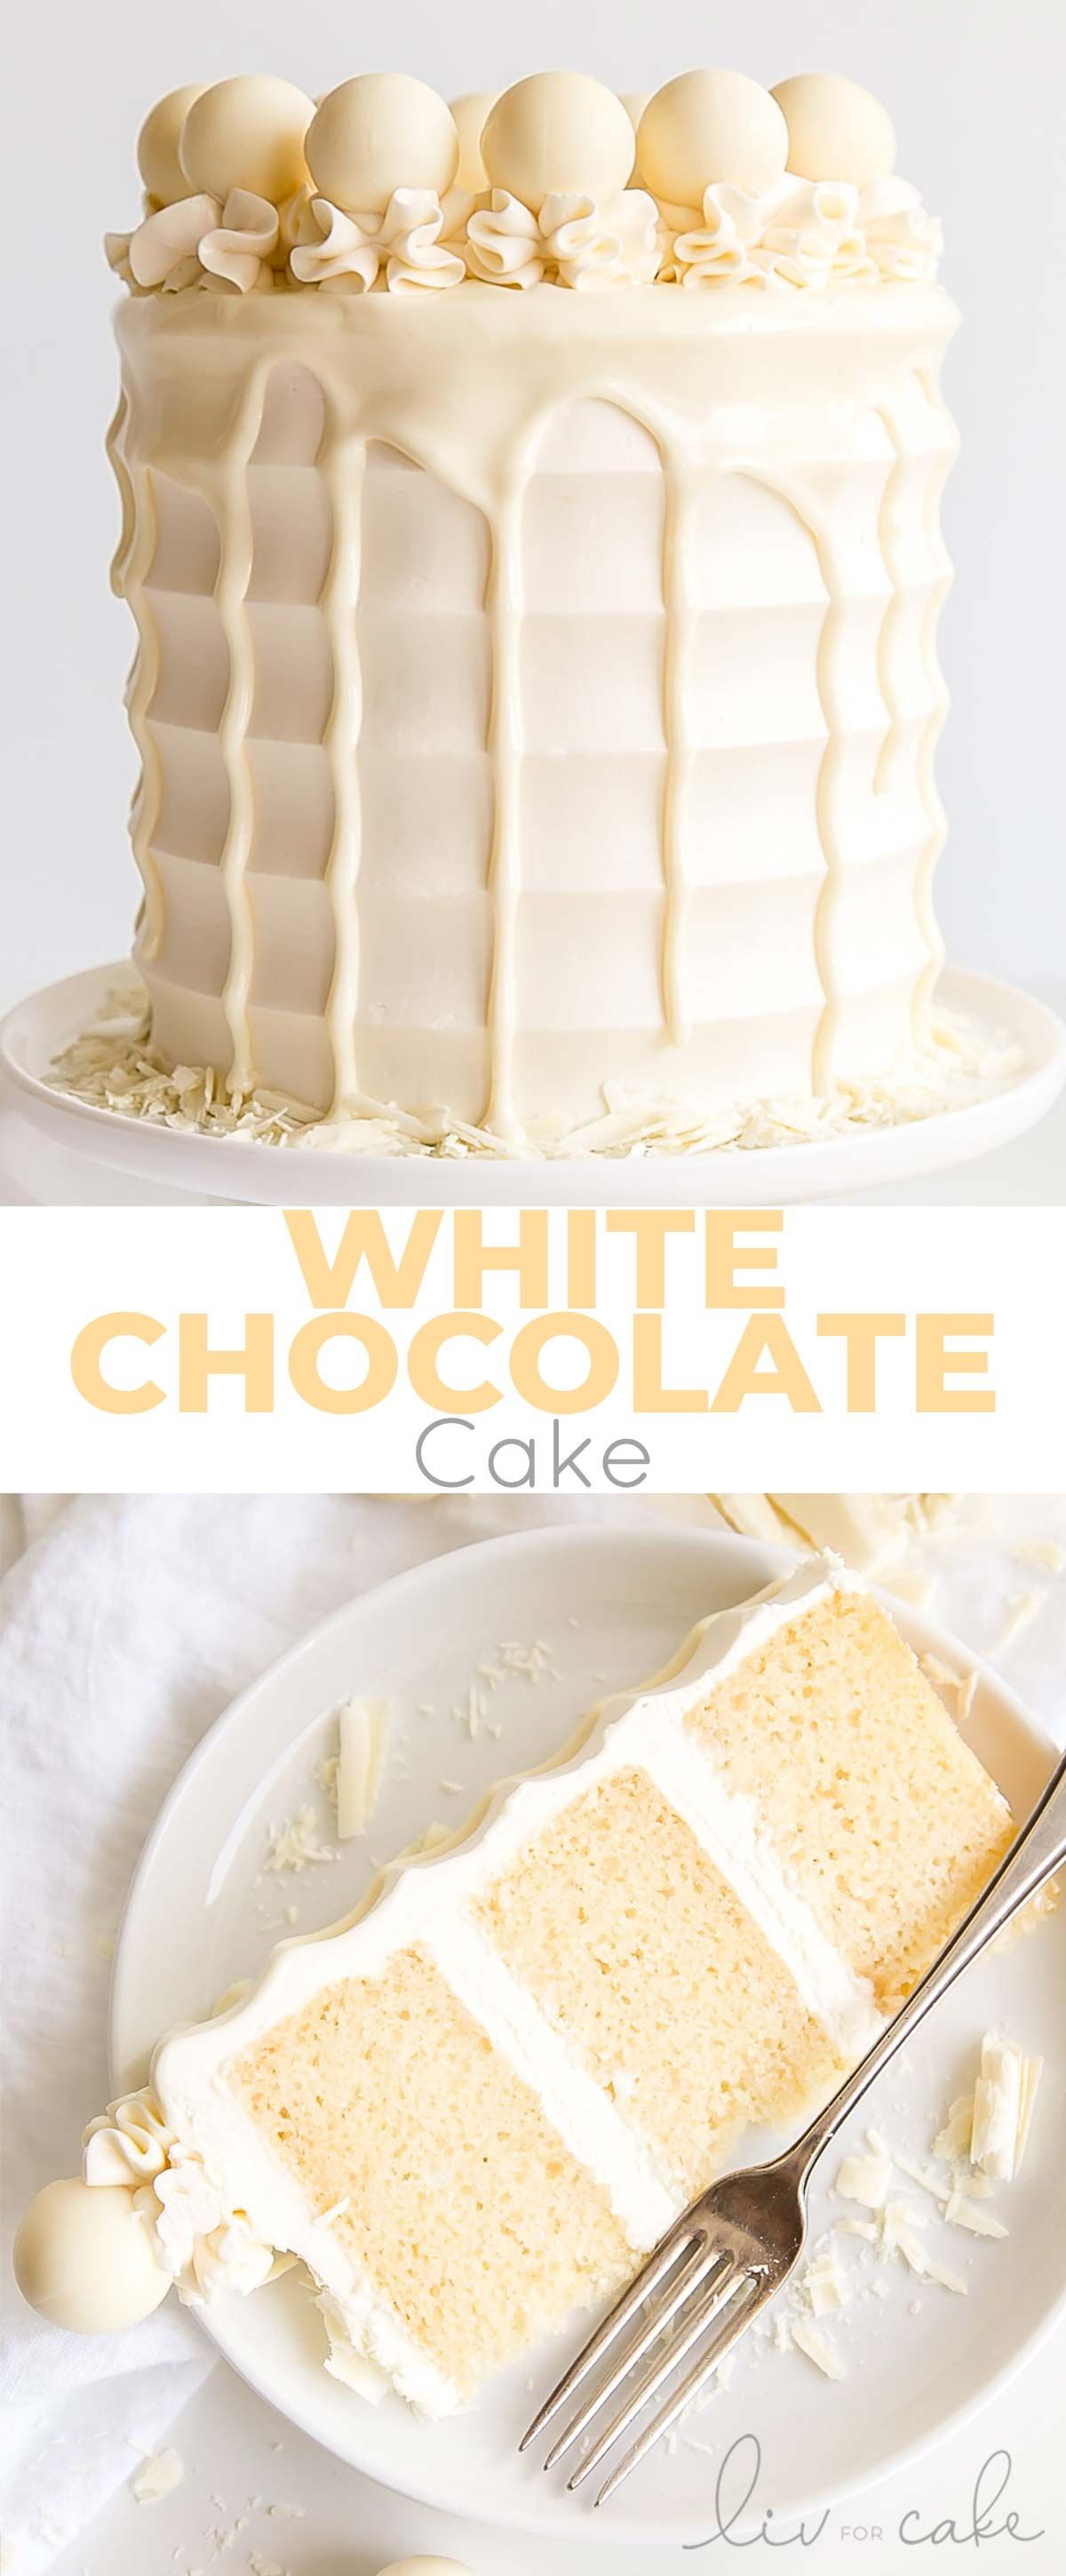 This White Chocolate Cake is both decadent and delicious. White chocolate is incorporated into the cake layers, the frosting, and the drip for a stunning monochrome effect. #allwhiteparty